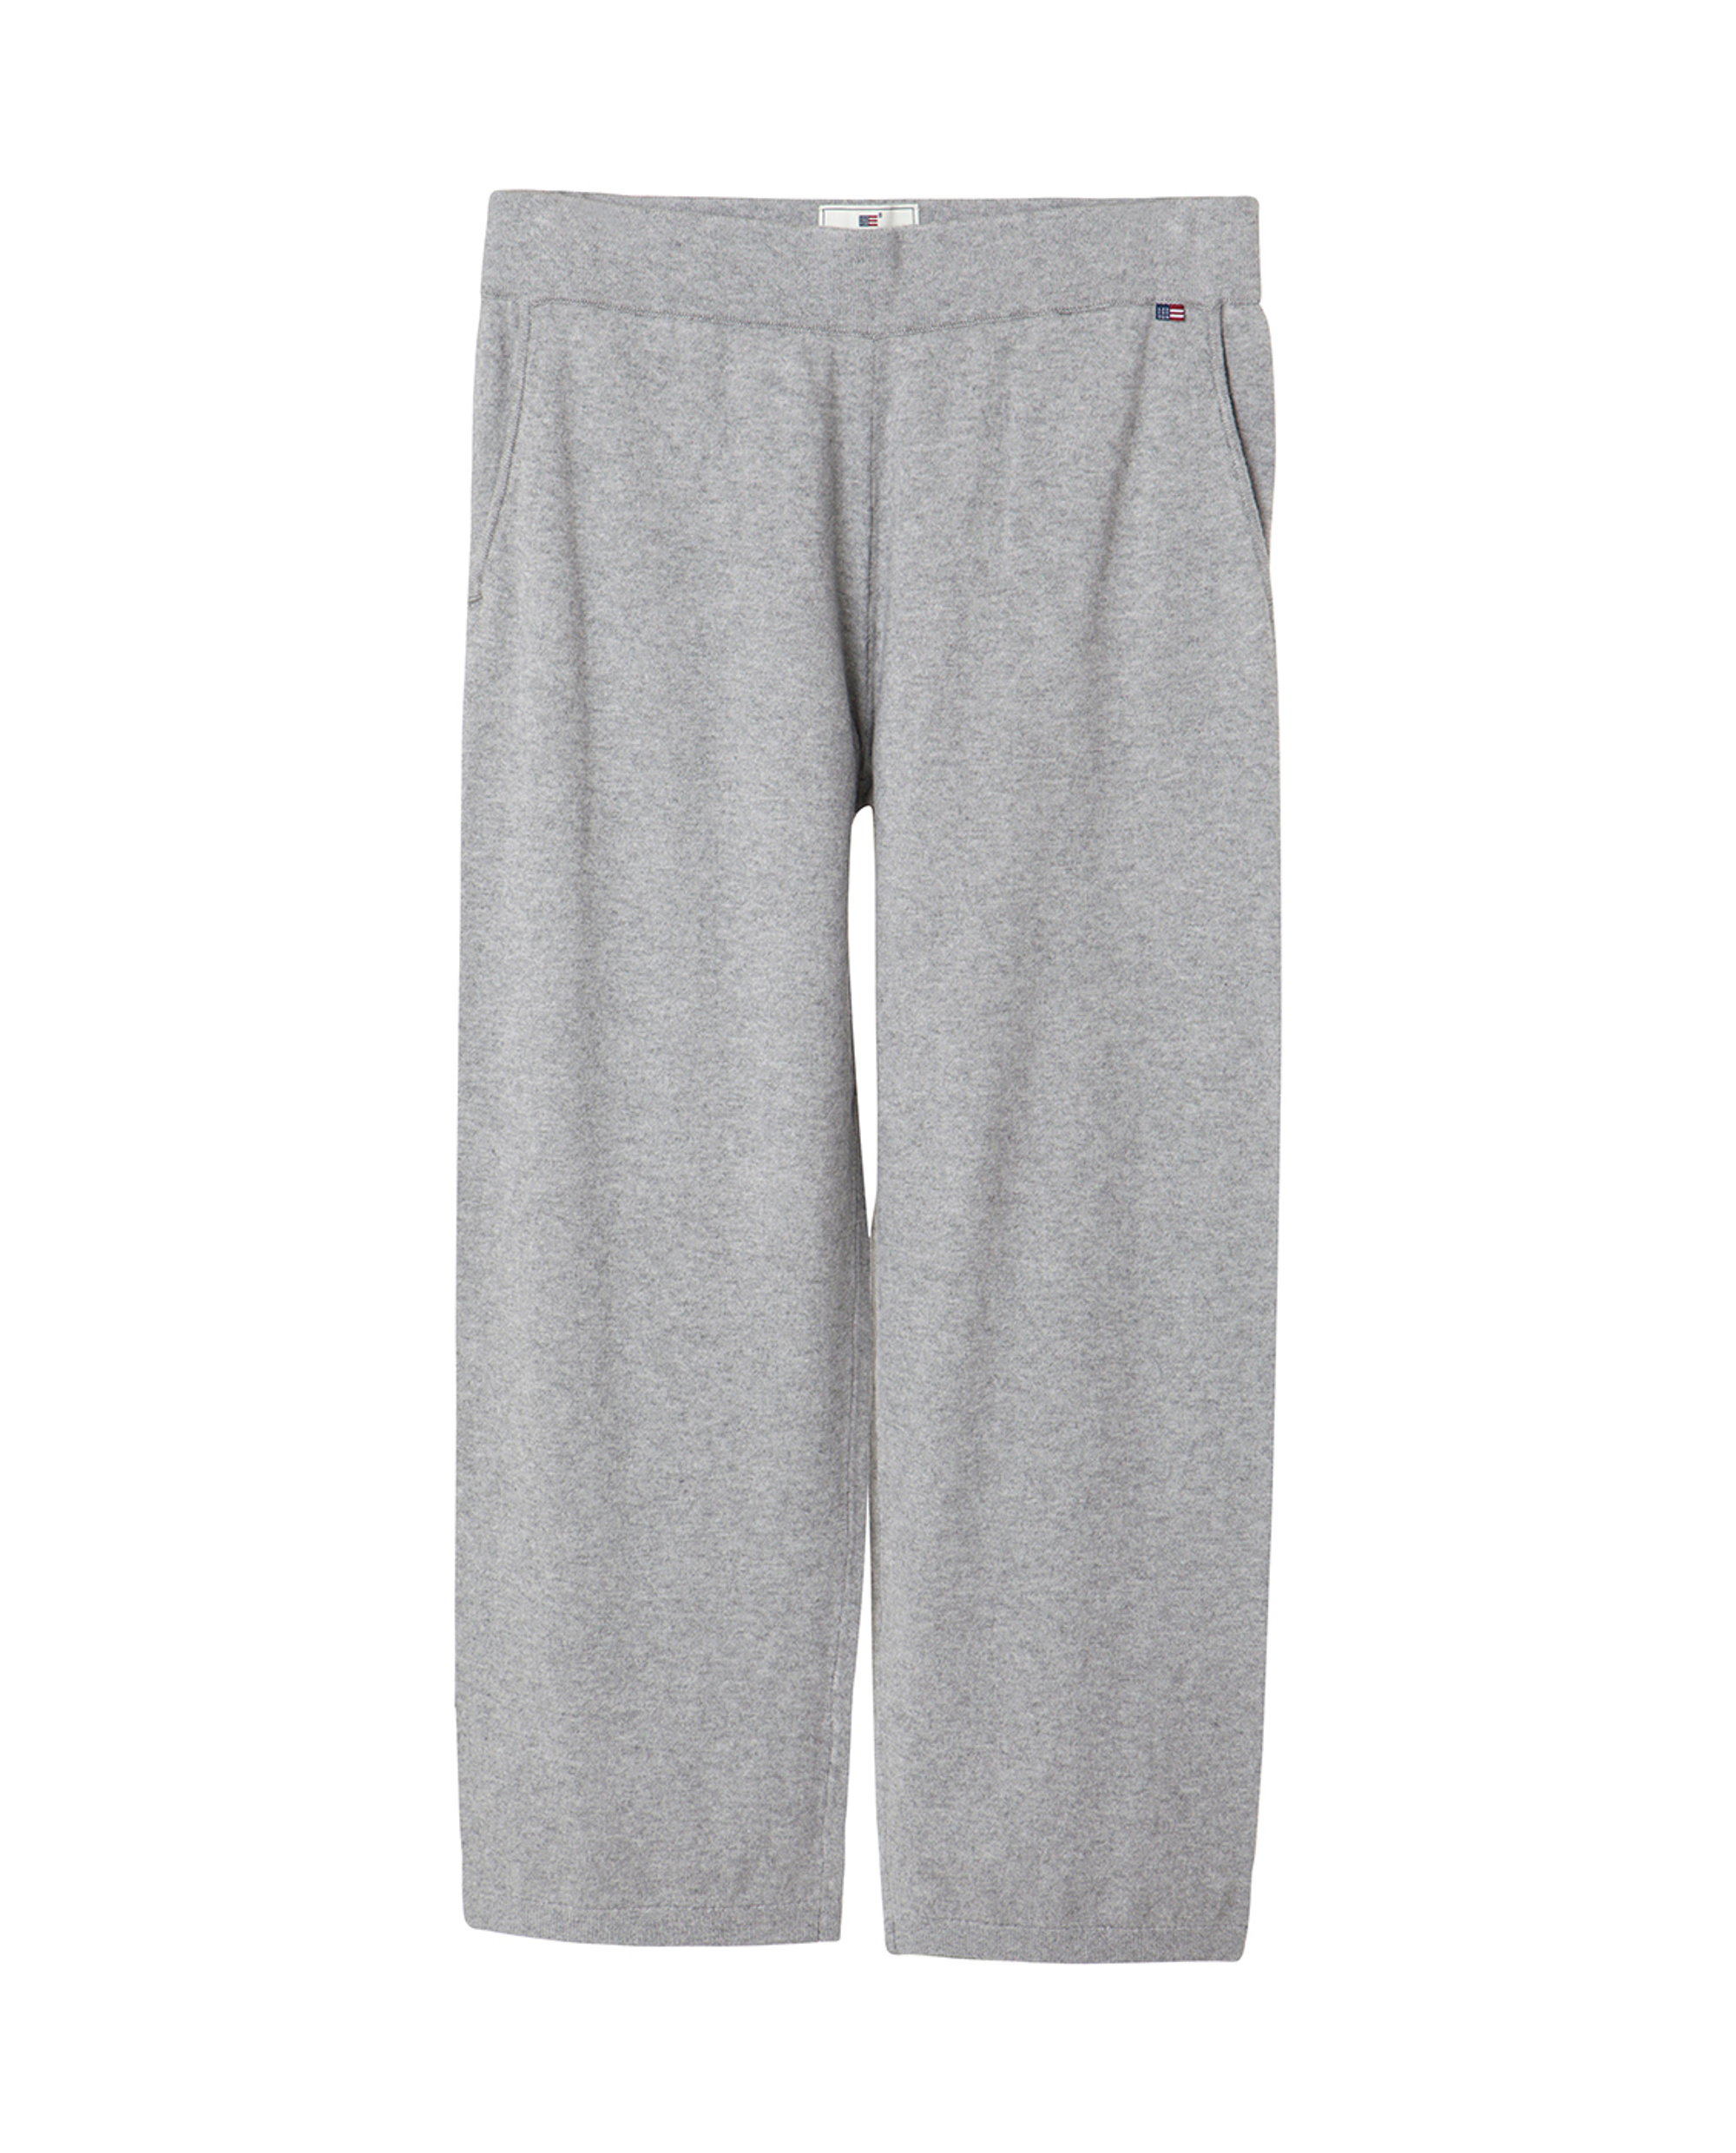 Des Knitted Cotton/Cashmere Track Pants, Light Warm Gray